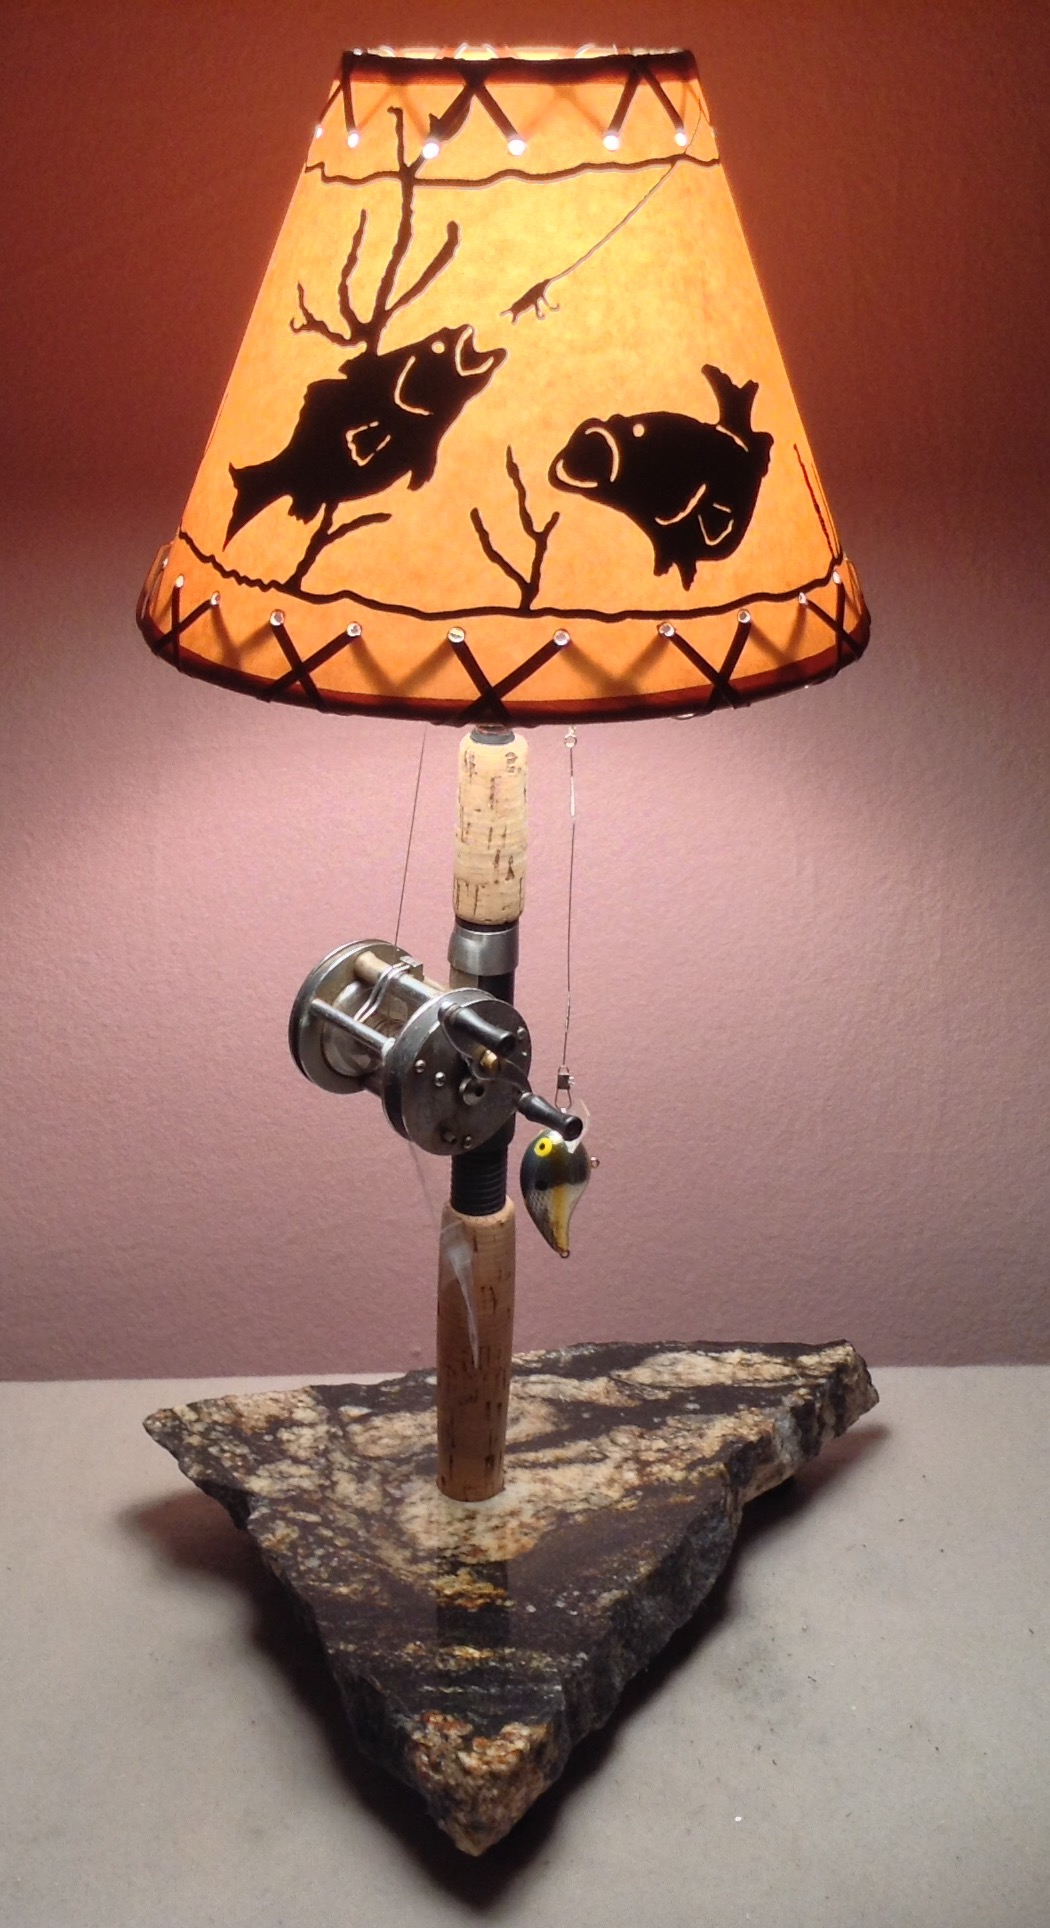 Space Themed Lamp The Essentials Of A Fishing Tackle Room Interior Design